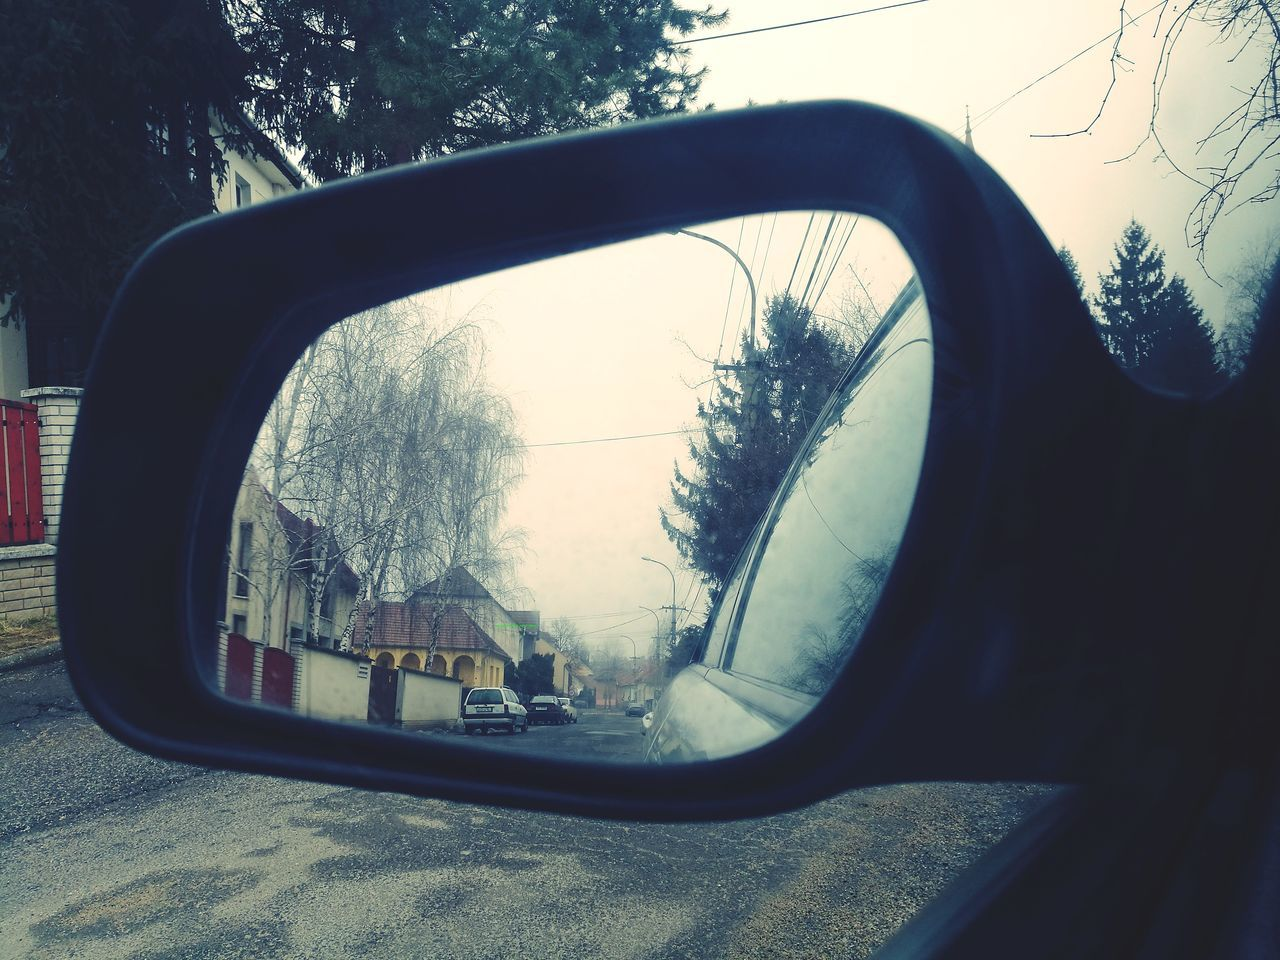 The City Light Streetinmirror Mirror Picture Side-view Mirror No People Outdoors Car Close-up